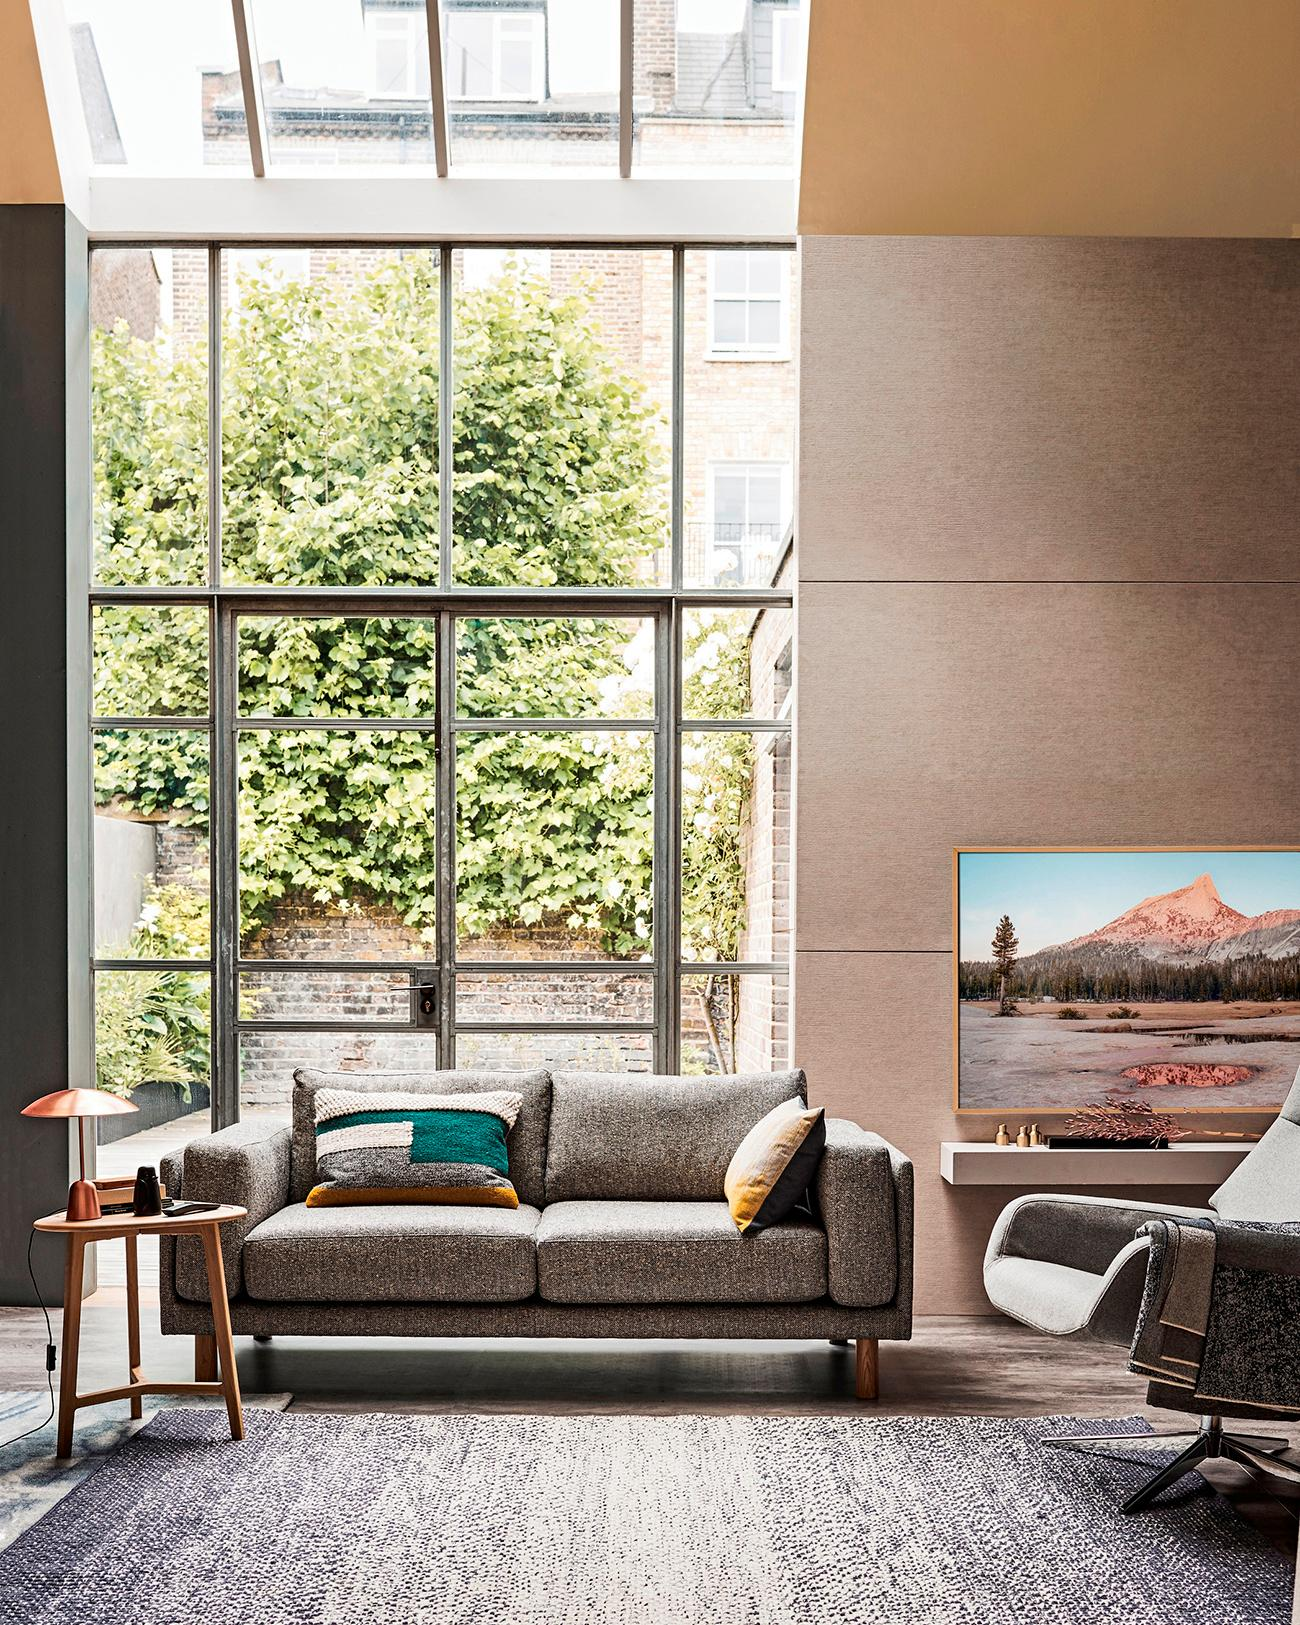 Designer Sofas John Lewis Sofas From 79 Home The Sunday Times